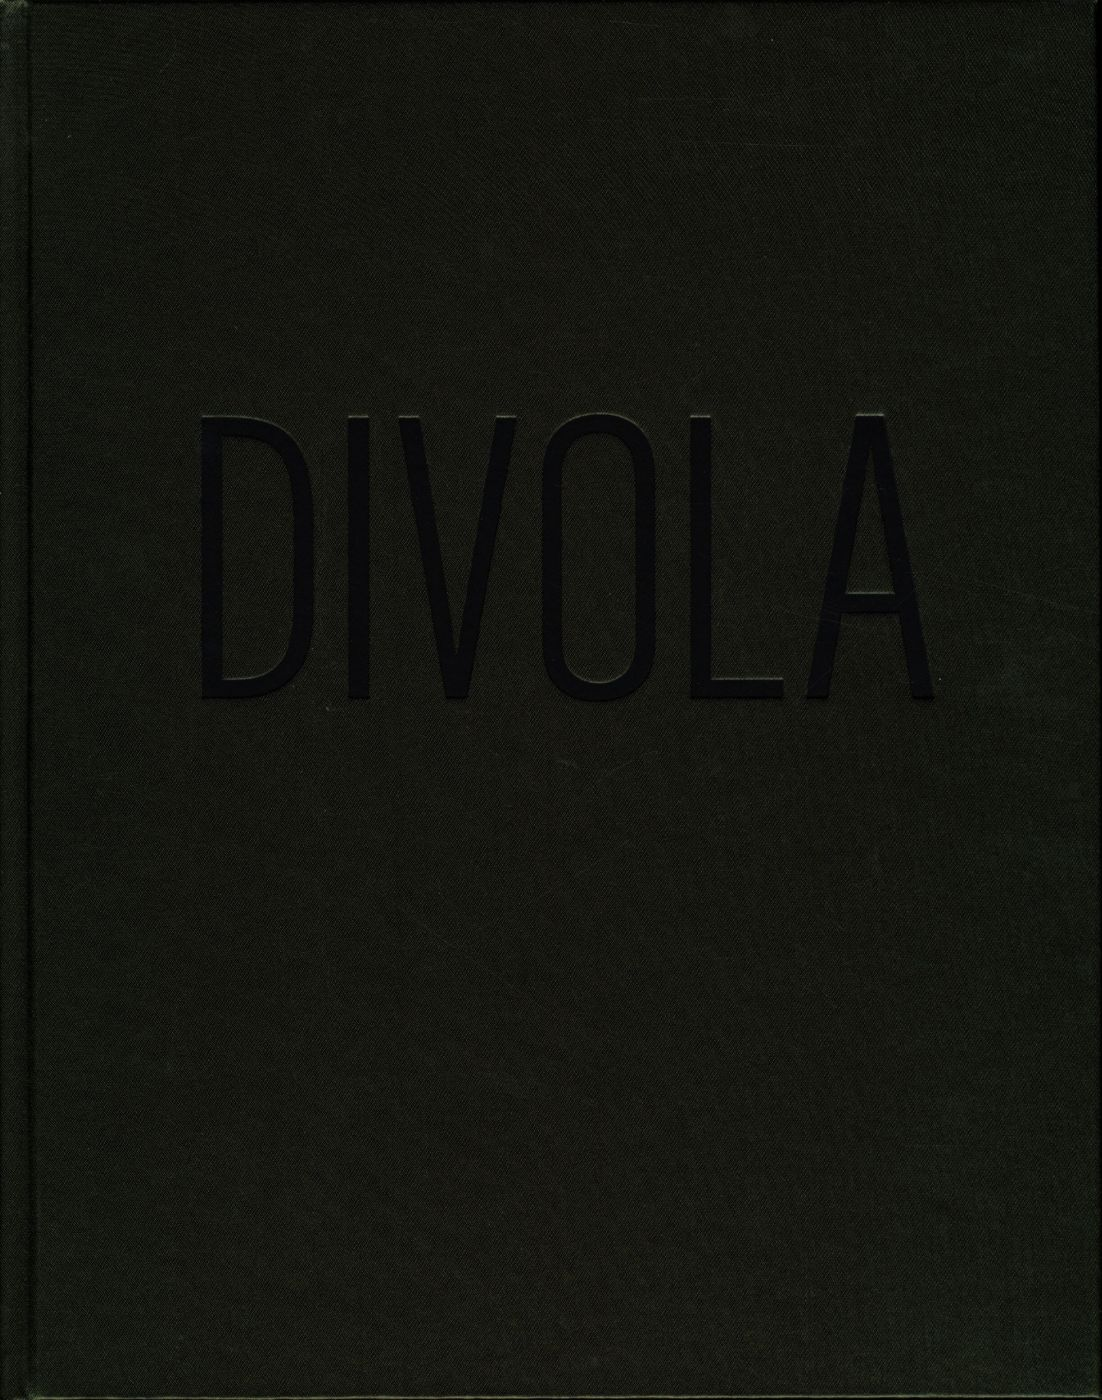 NZ Library #1: John Divola: San Fernando Valley, Limited Edition (NZ Library - Set One, Volume Two) [SIGNED]